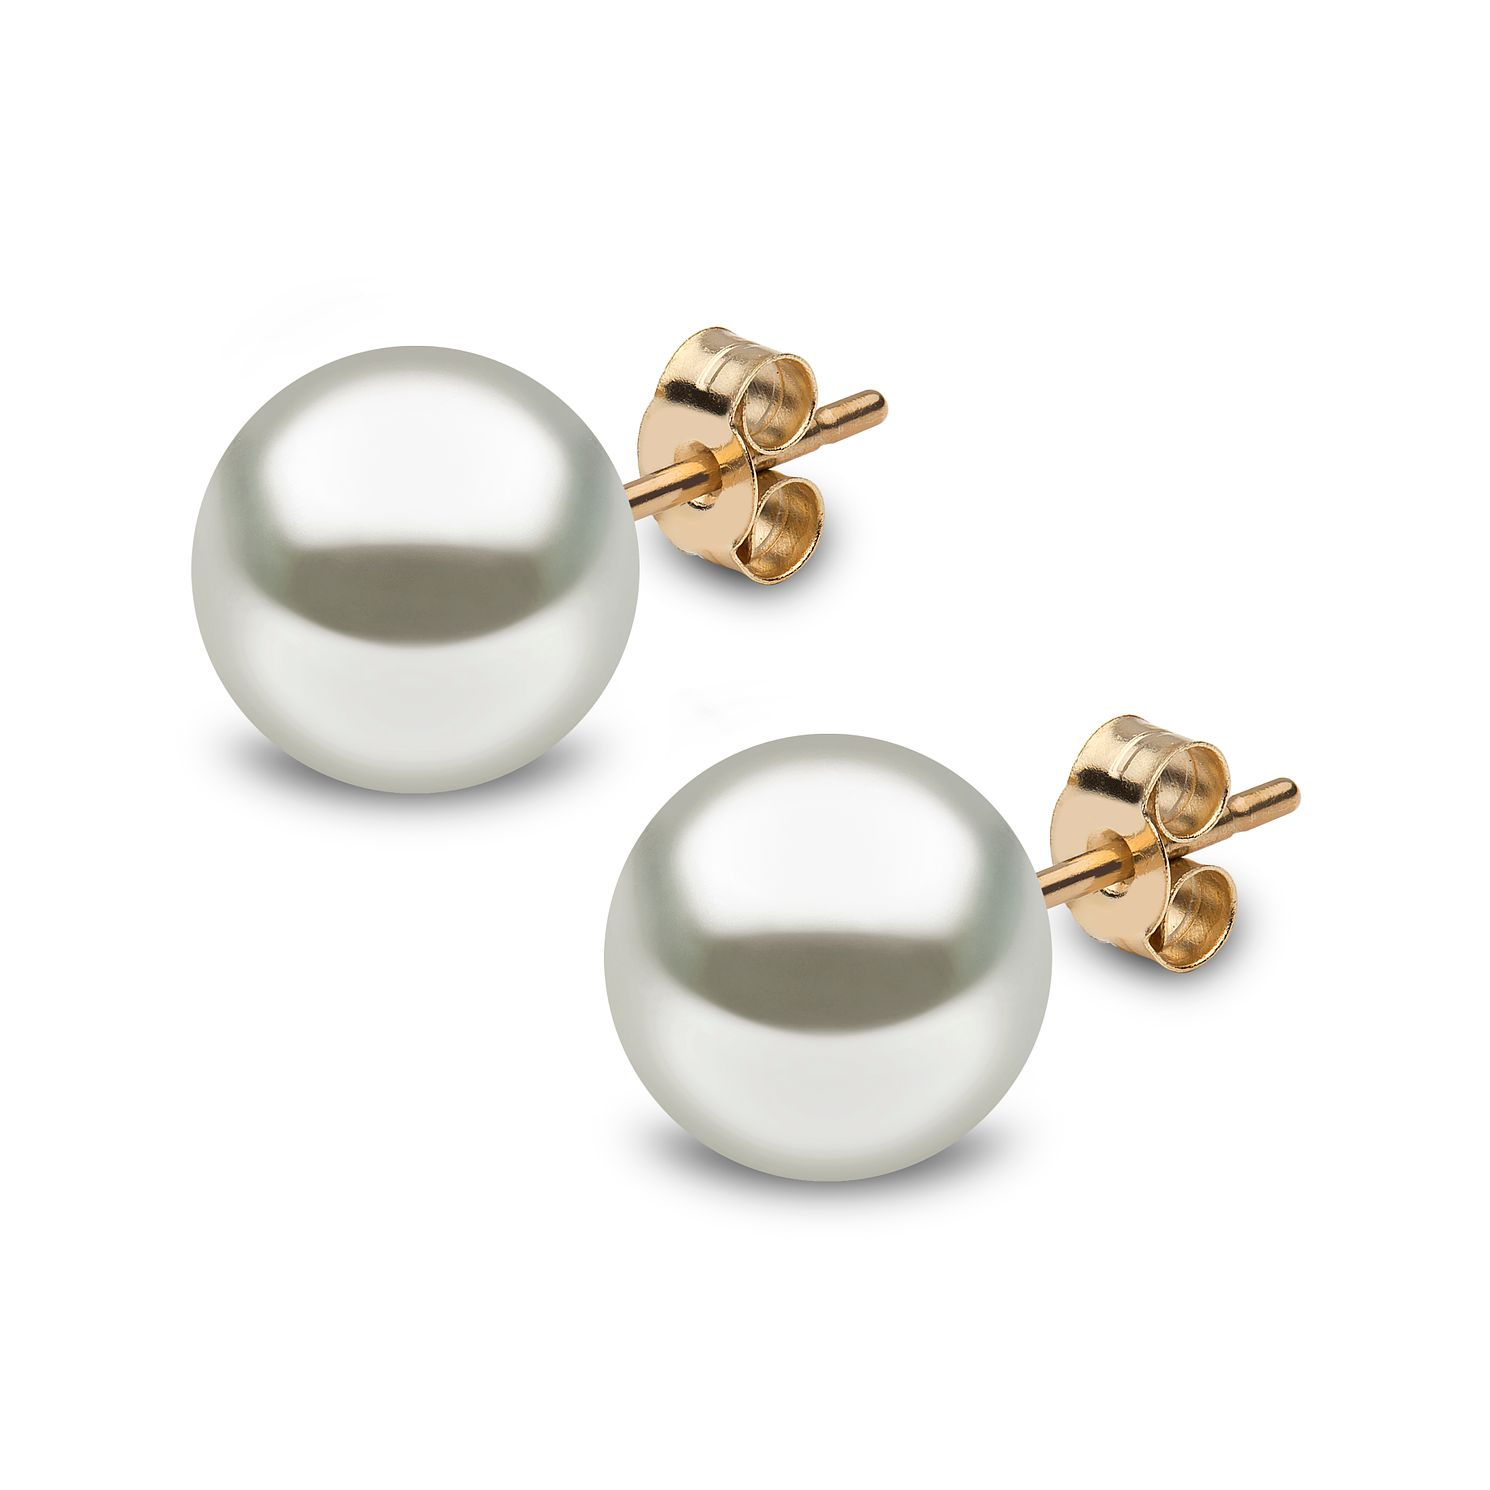 Yoko London 18ct Yellow Gold South Sea Stud Earrings - Product number 1113607